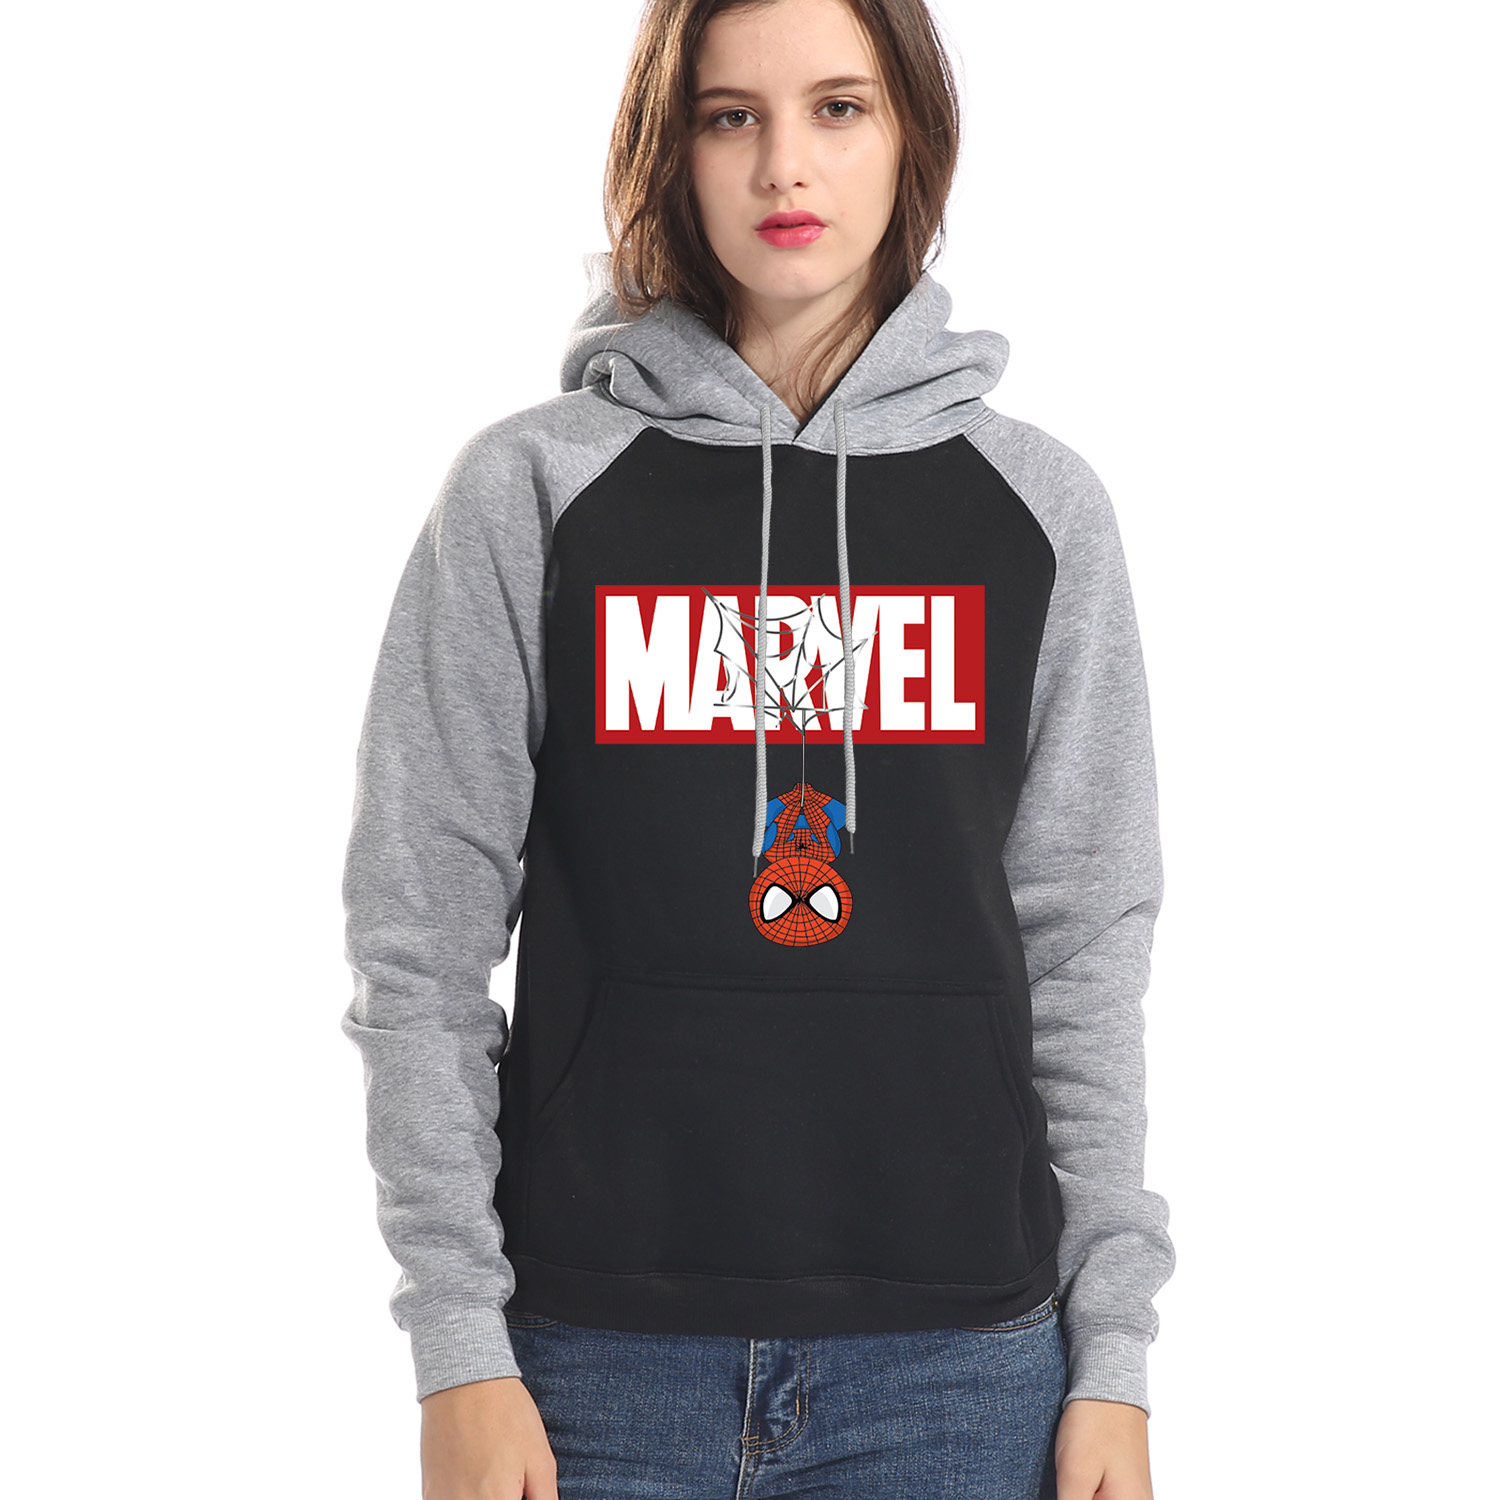 Marvel Superhero Spiderman Women Hoodies Sweatshirts Autumn Winter Warm Hoodie 2019 The Avengers Casual Hooded Pullover